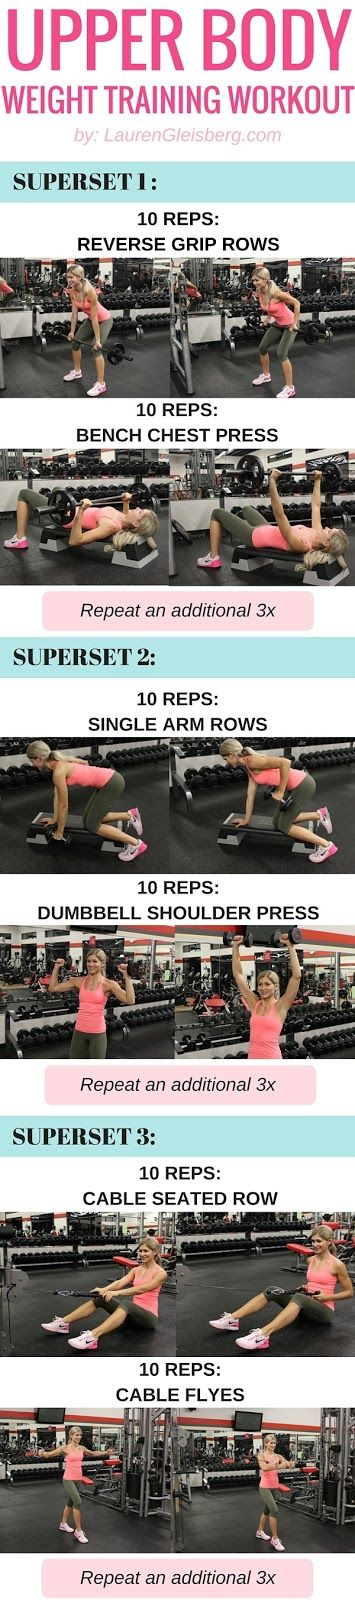 GET FIT STRONG & SEXY WITH THIS UPPER BODY WEIGHT TRAINING WORKOUT FOR WOMEN   #LGBeautyAndBooty Challenge - week 4, day 5 by LaurenGleisberg.com